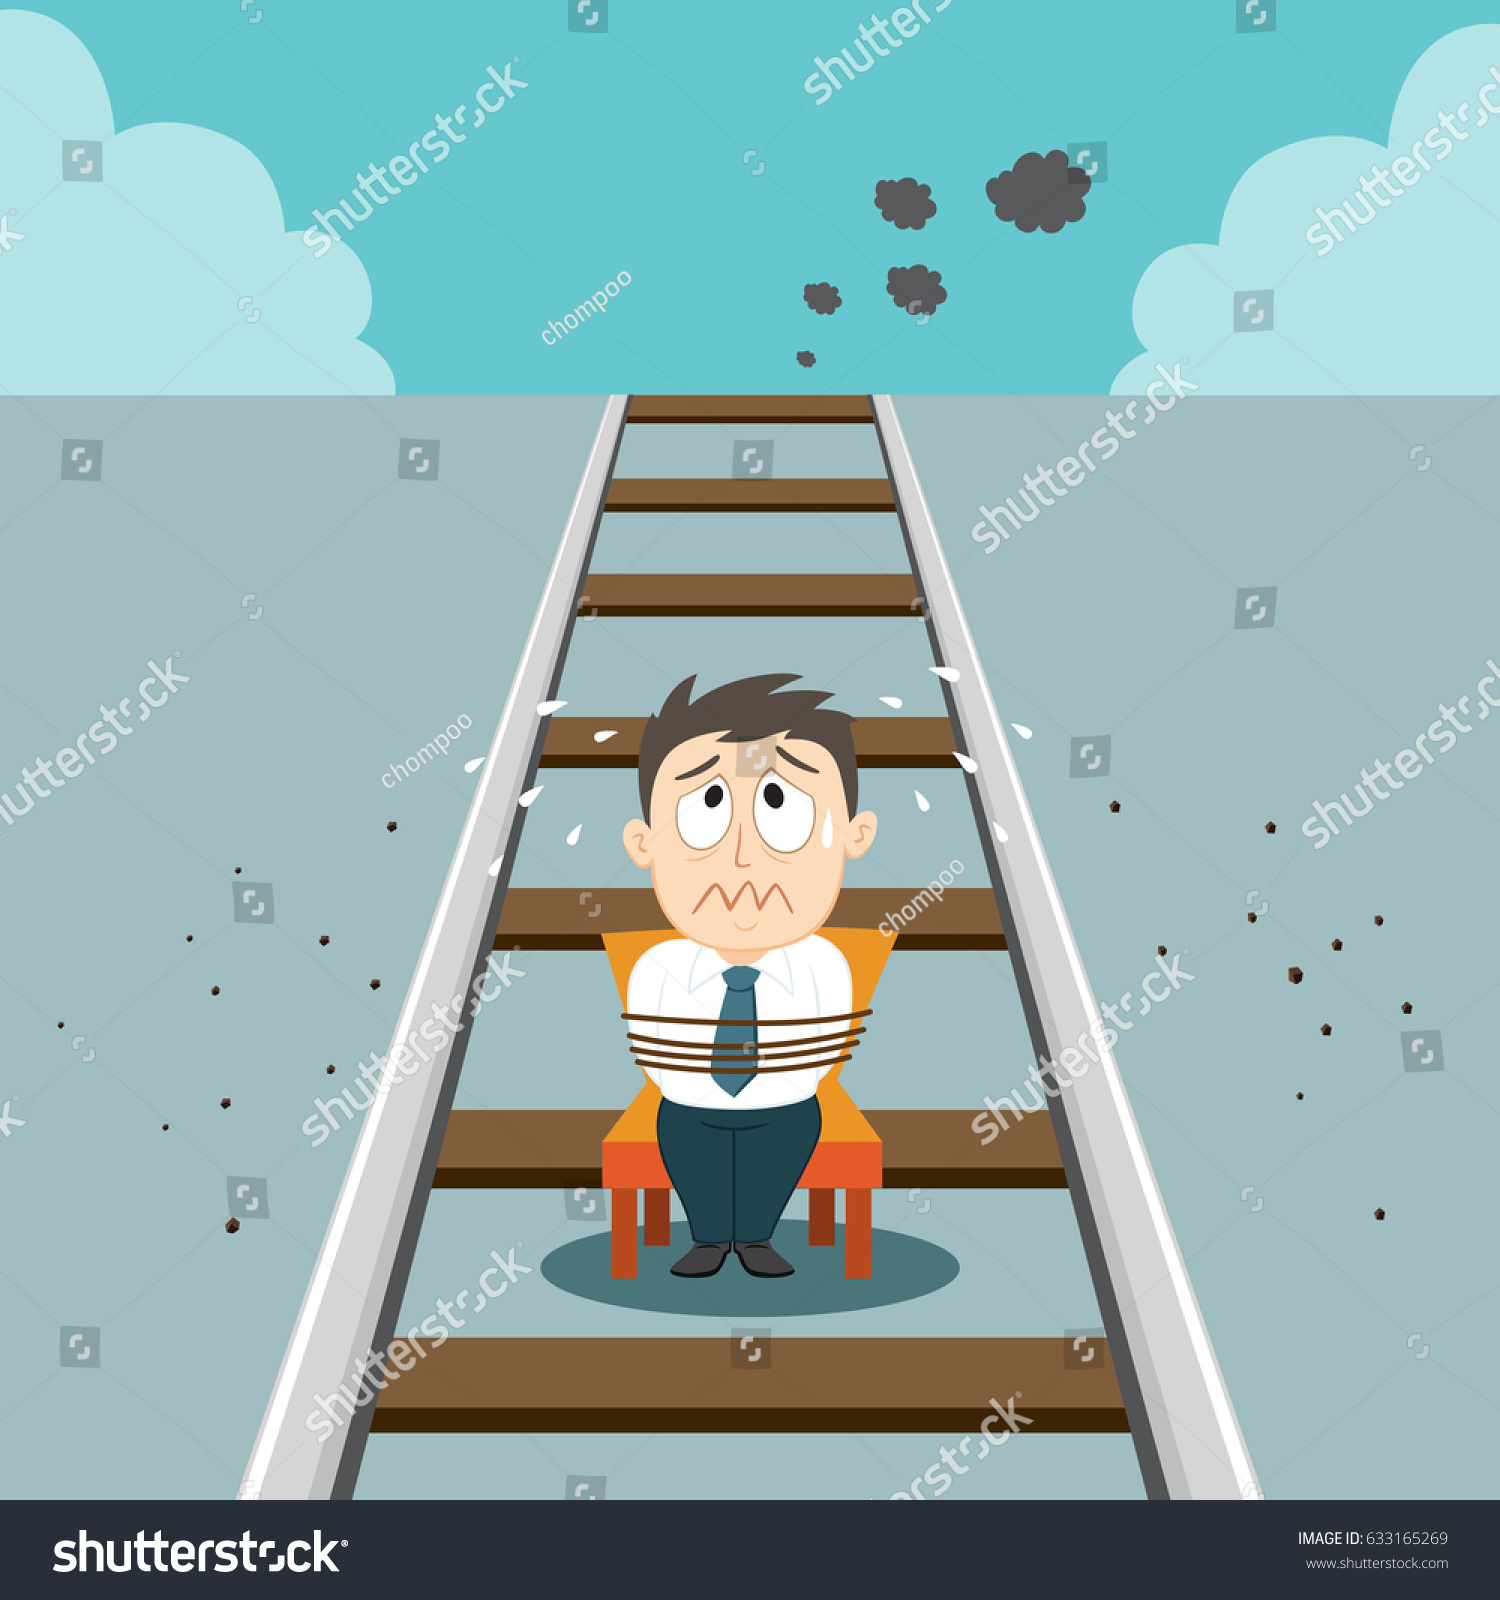 Gagged Animation businessman tied chair gagged on railroad stock image